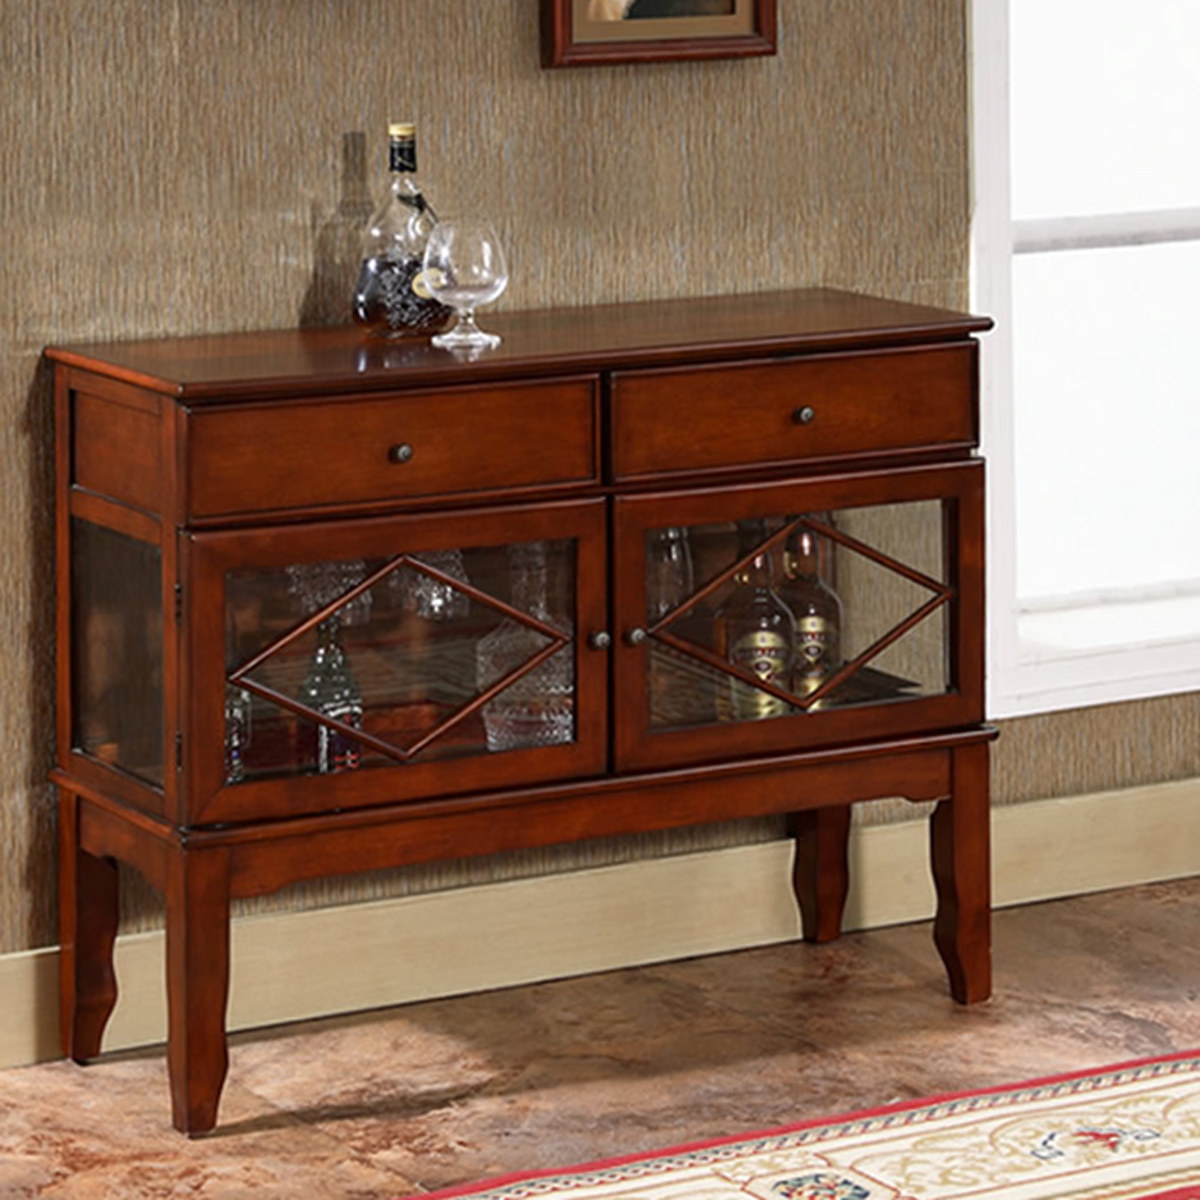 Picture of: All Things Cedar Buffet Curio Cabinet Corner Hutch Hall Table Entry Bench Shoe Storage Rack Accent Furniture